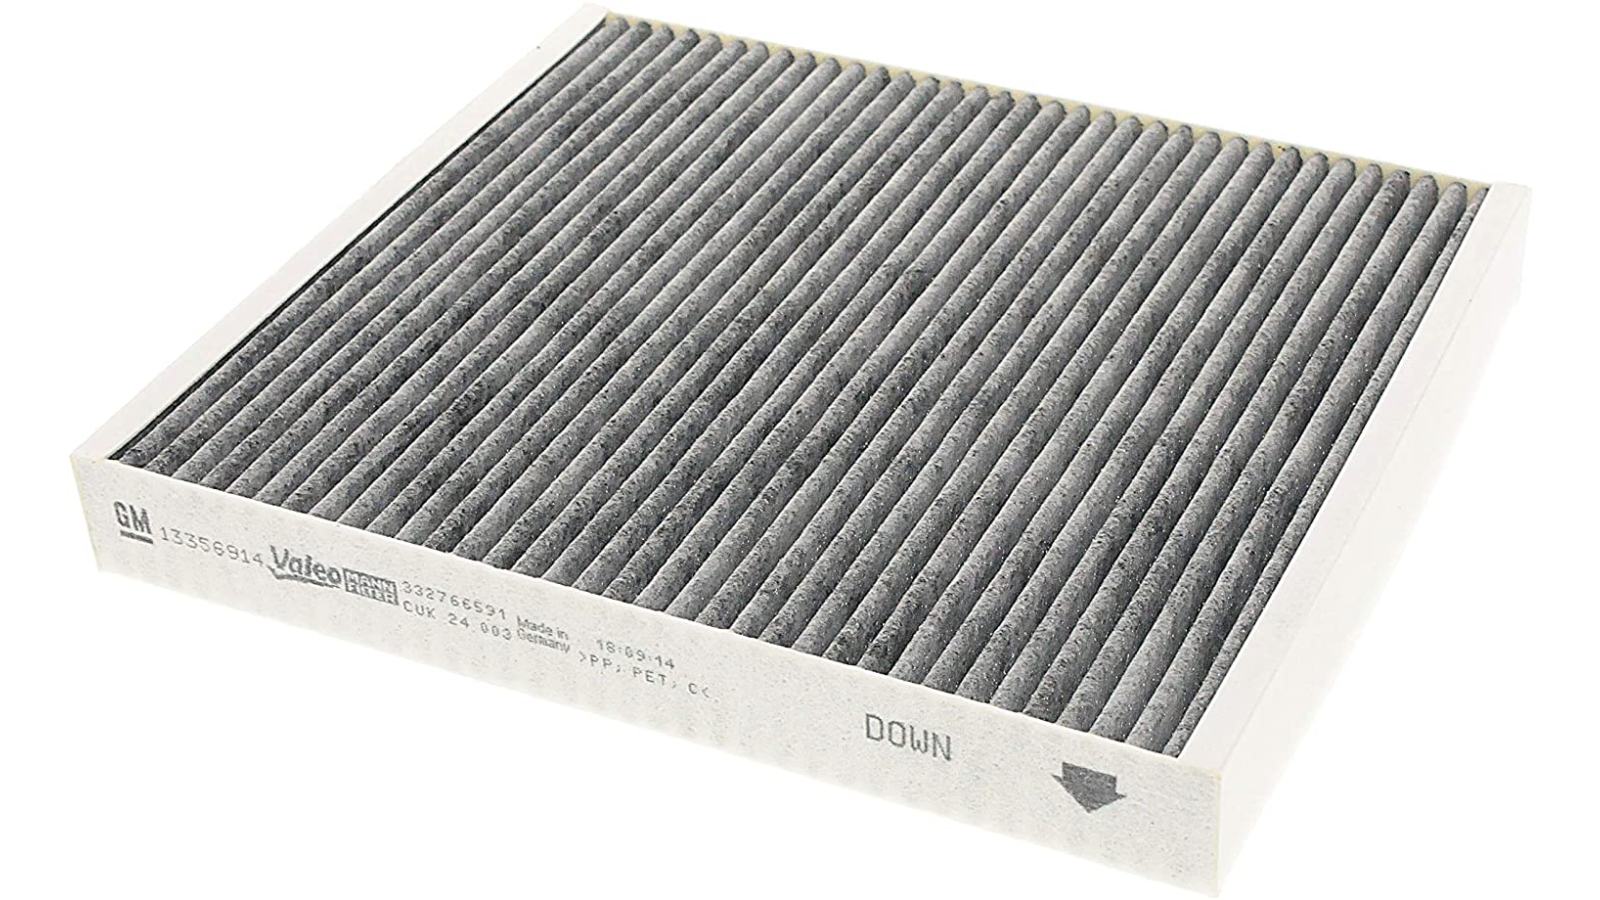 Image of an air filter resting on its side